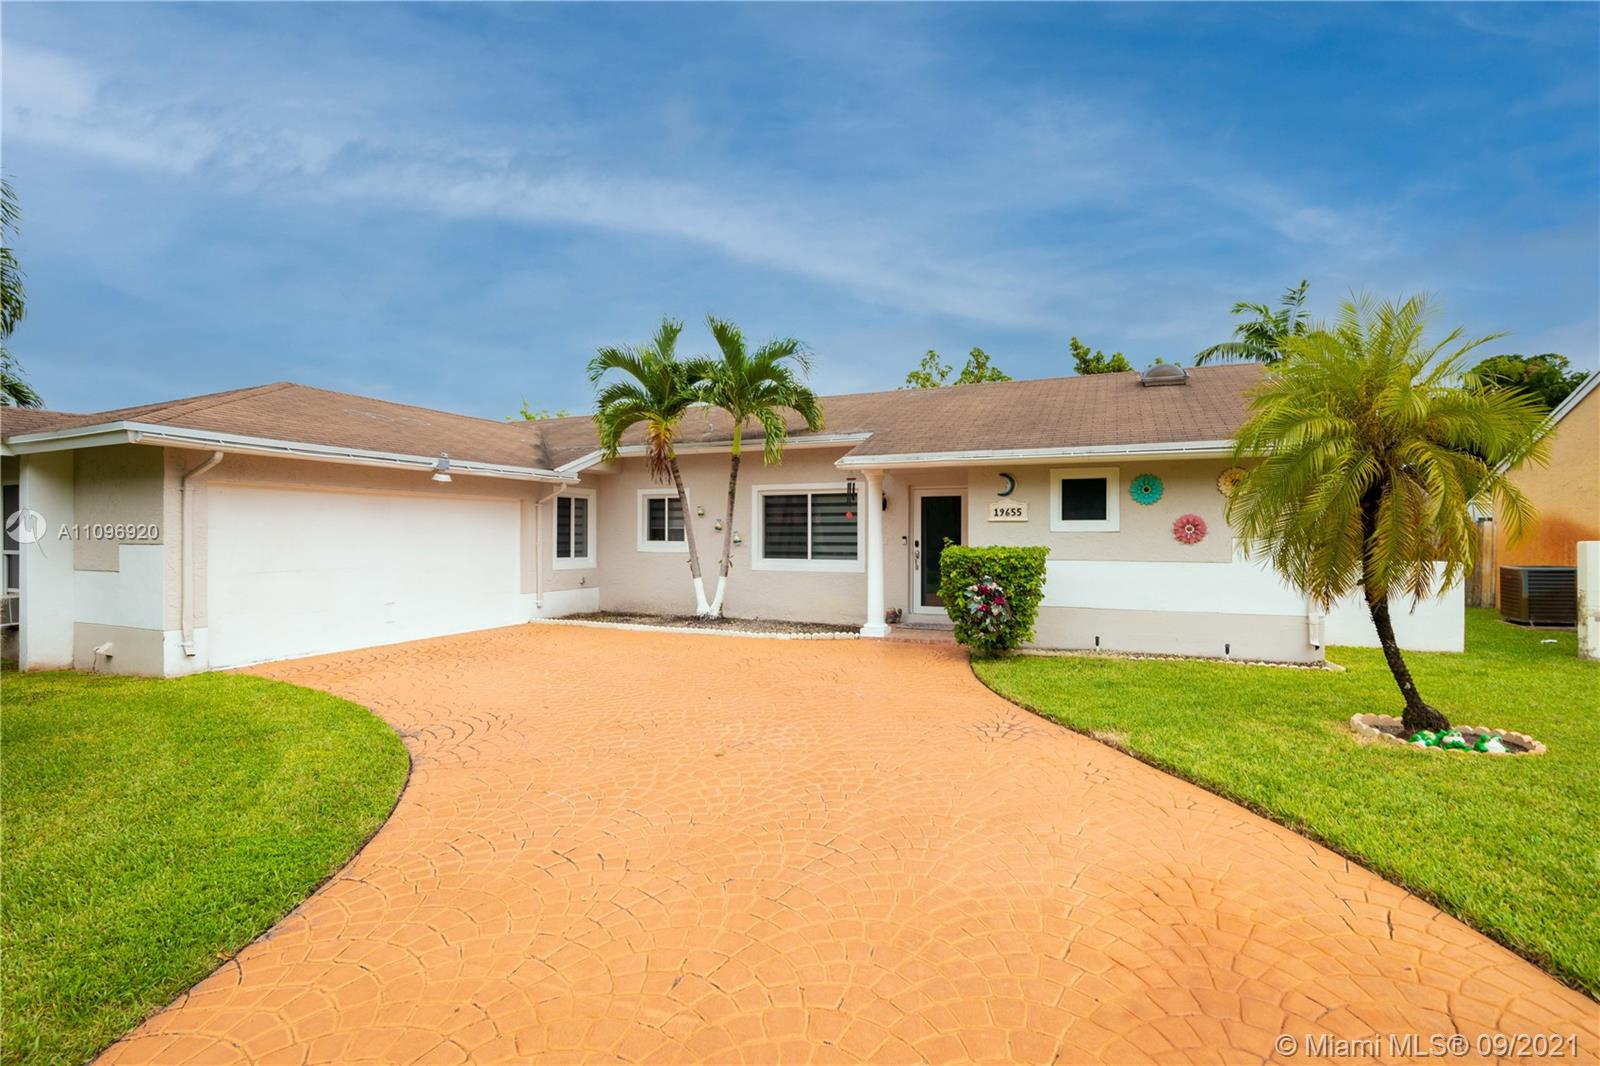 Single Family Home,For Sale,19655 NW 62nd Ct, Hialeah, Florida 33015,Brickell,realty,broker,condos near me